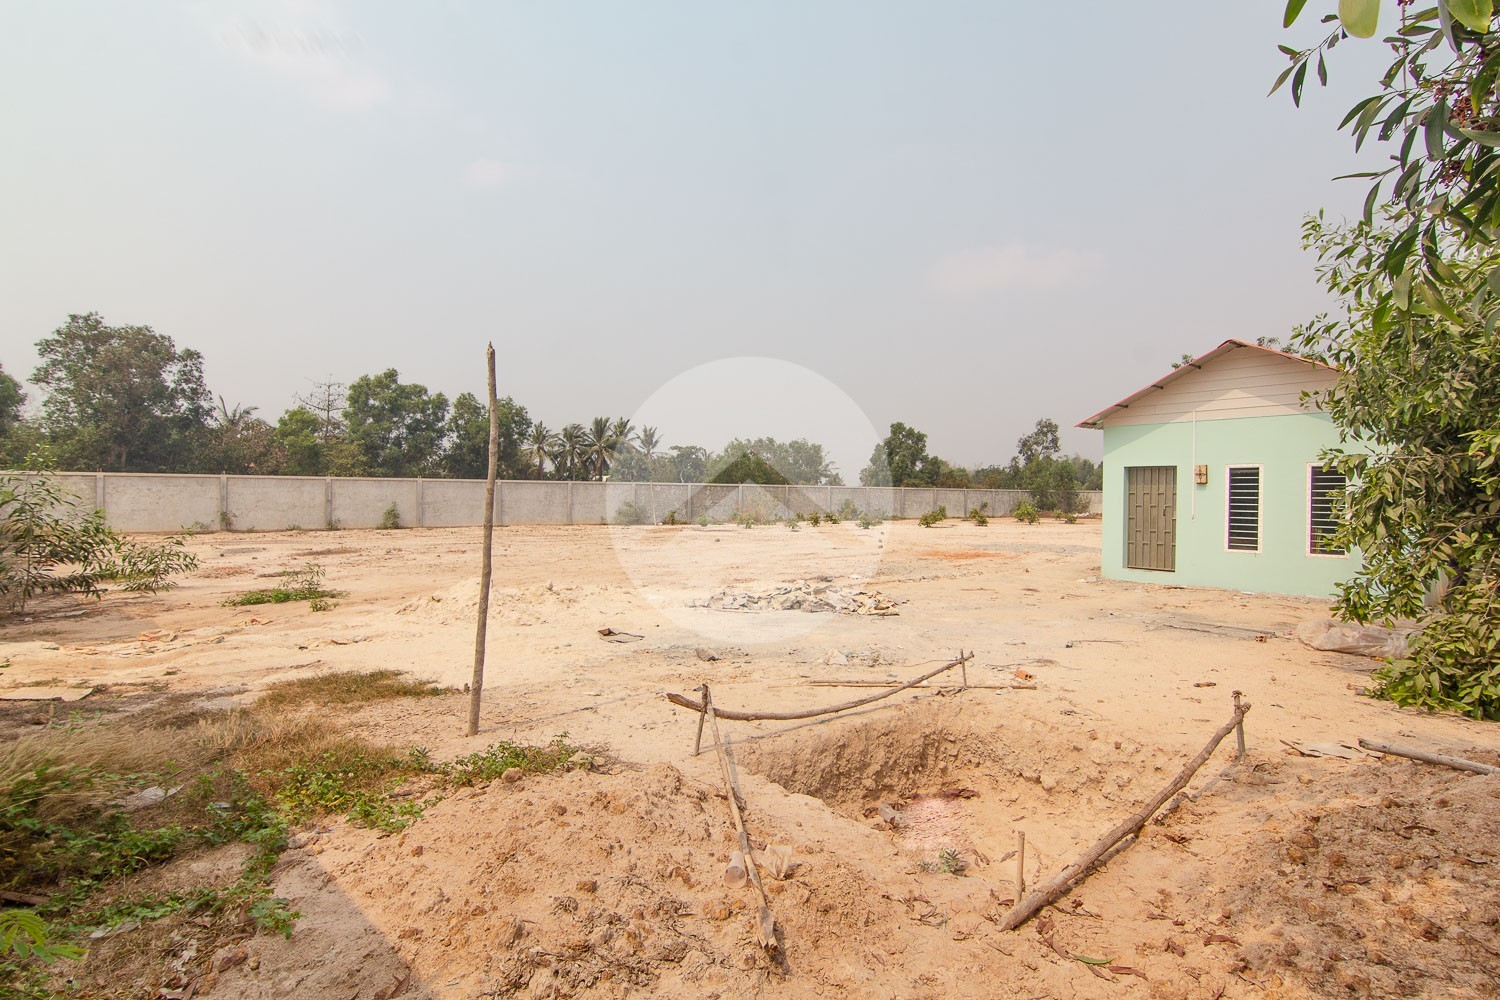 3186 Sqm Residential Land For Sale - Sambour, Siem Reap